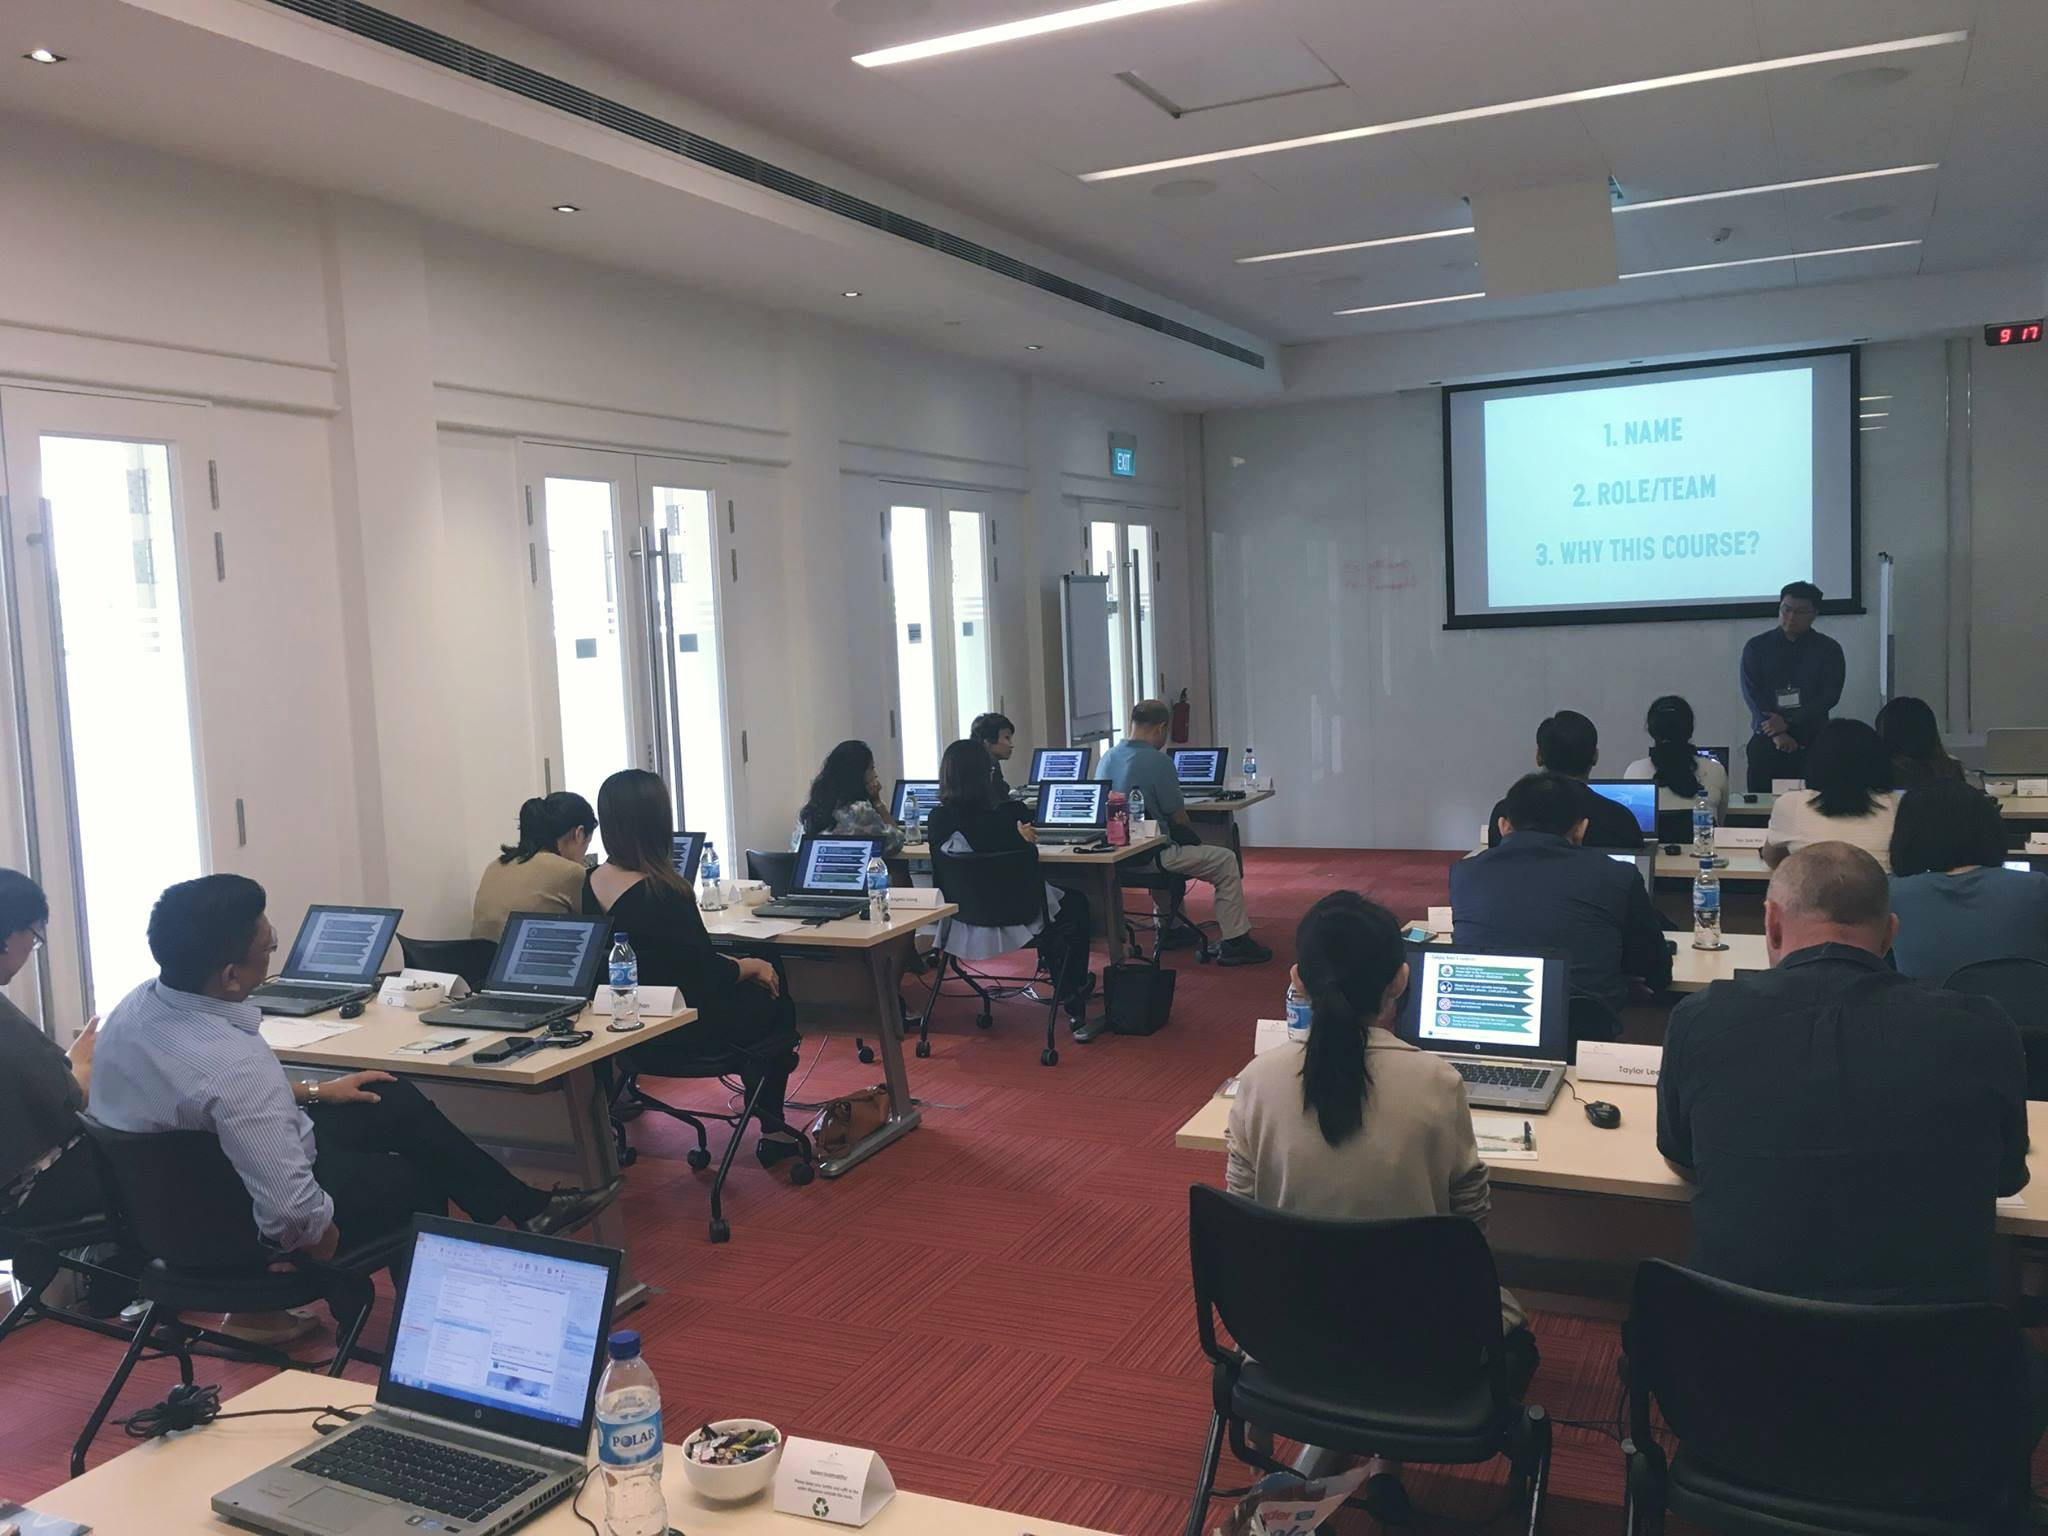 Collective Campus delivered a 1-day 'Introduction to Data Science' course for over 20 participants.